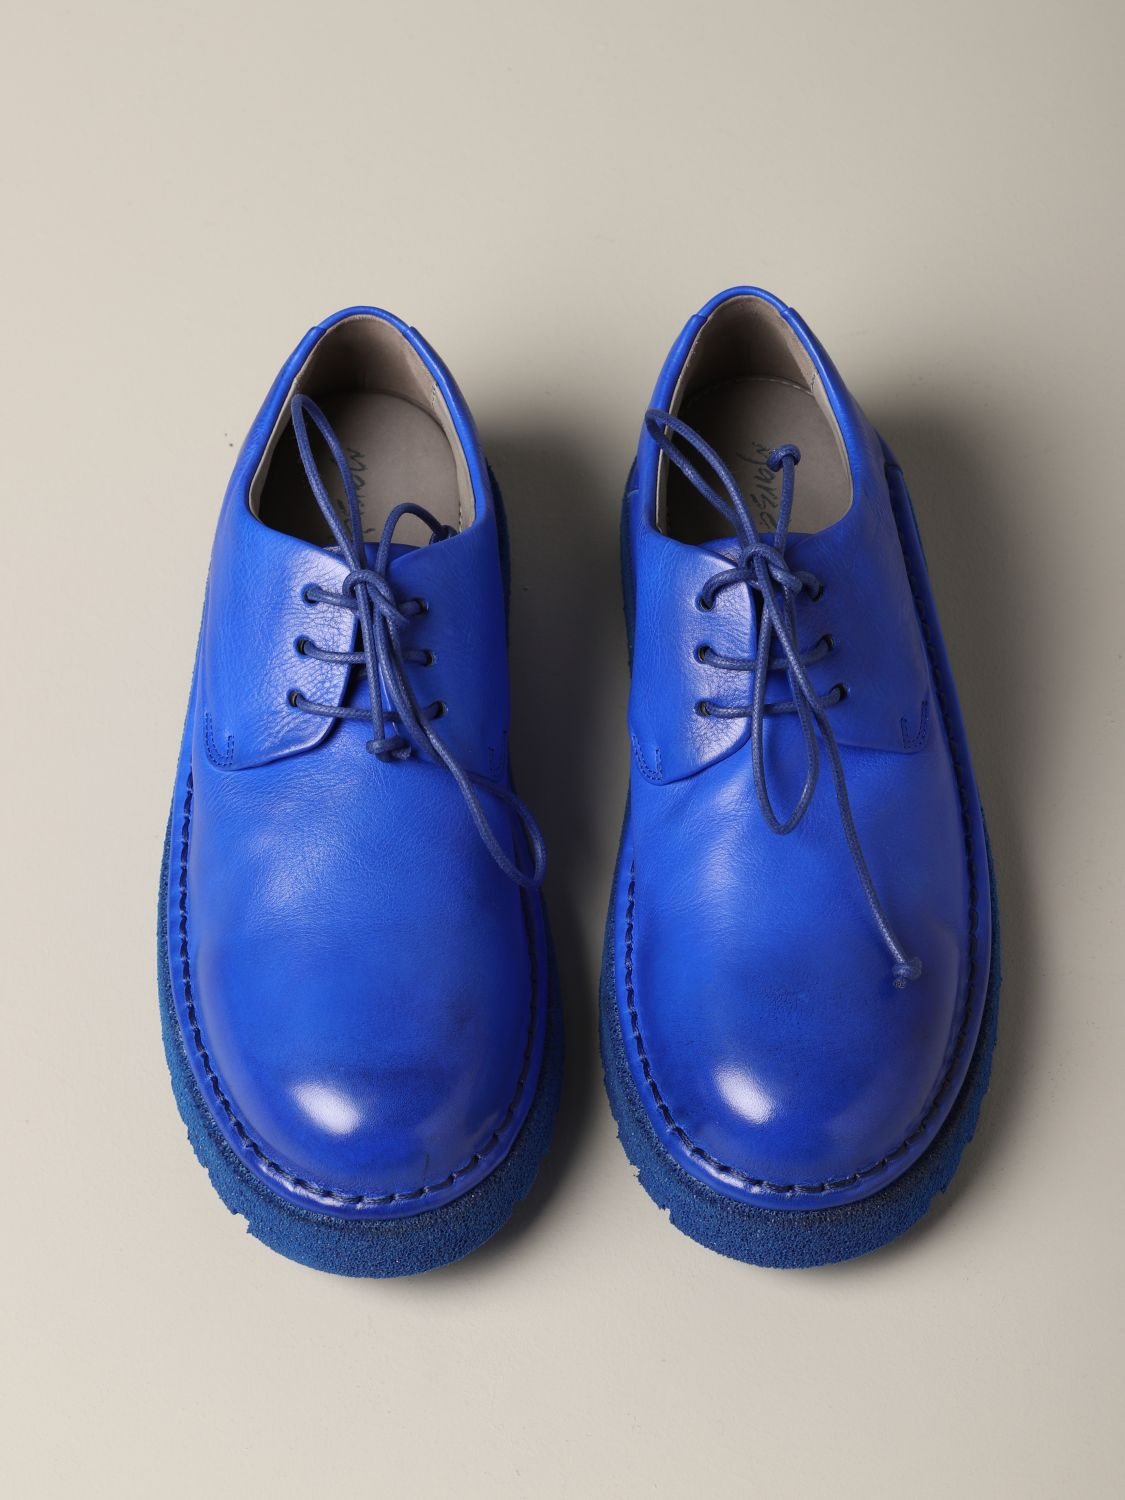 Marsèll Derby Pallottola pomice in leather blue 3